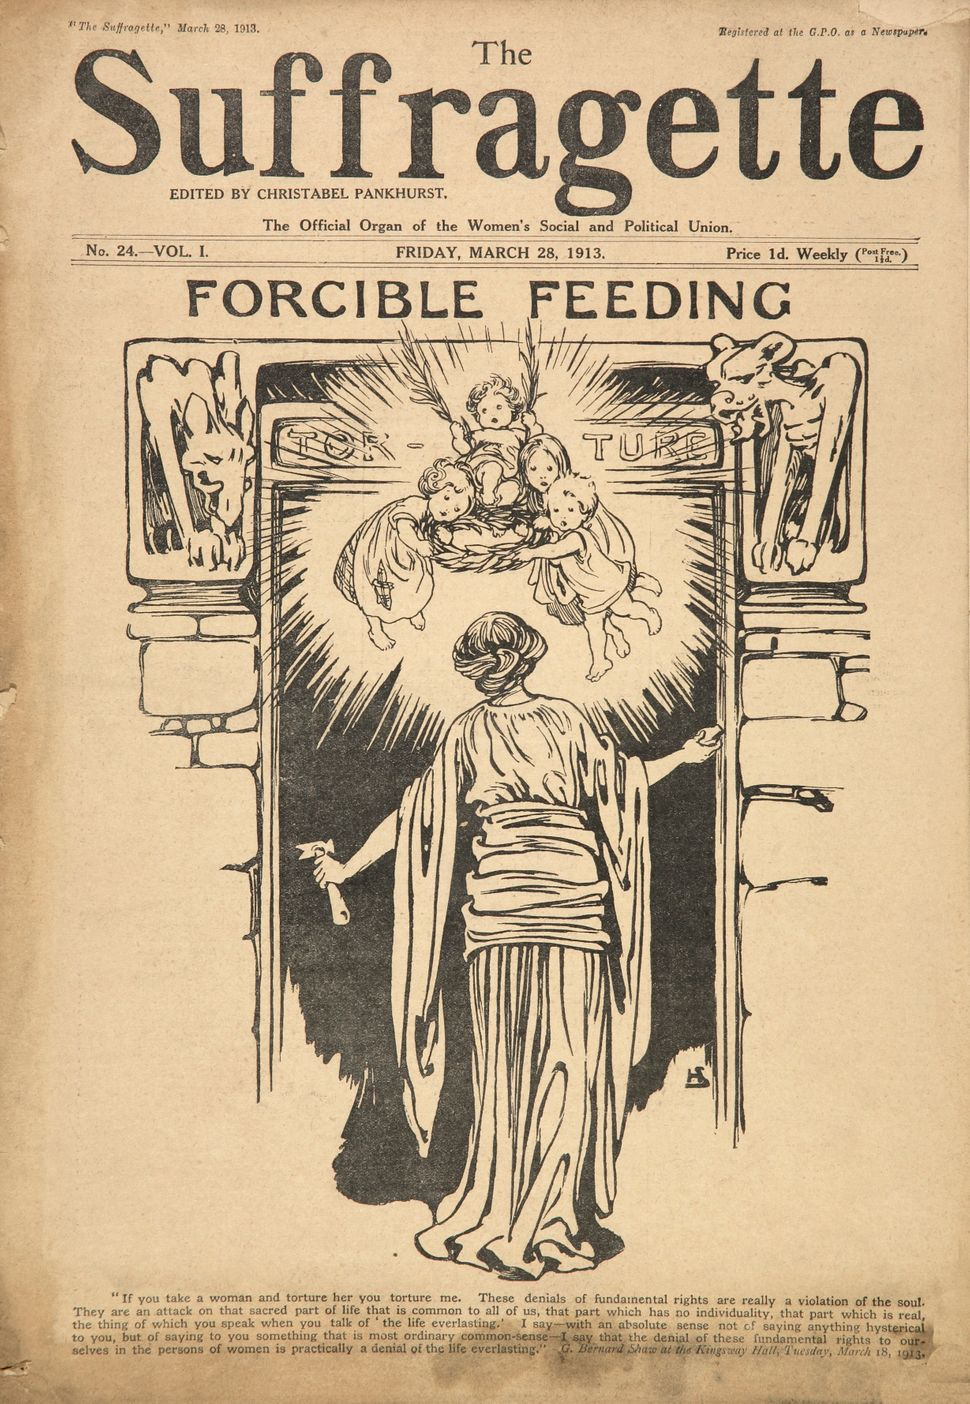 An illustration depicting force feeding as torture, published in The Suffragette magazine on March 28, 1913. The magazine was